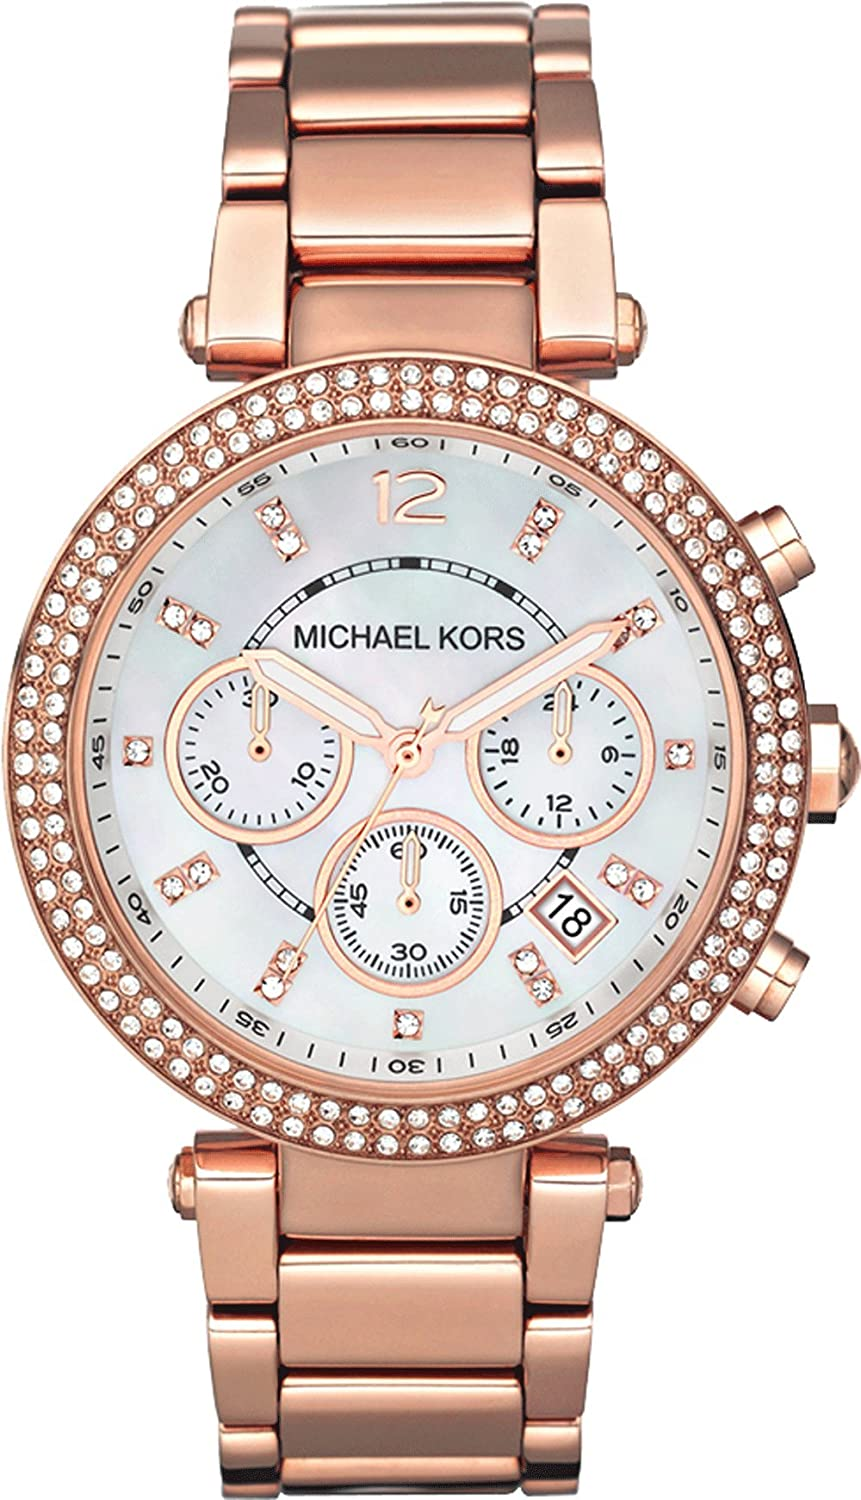 michael kors damen armbanduhr chronograph quarz edelstahl super sch ne uhr meiner meinung nach. Black Bedroom Furniture Sets. Home Design Ideas